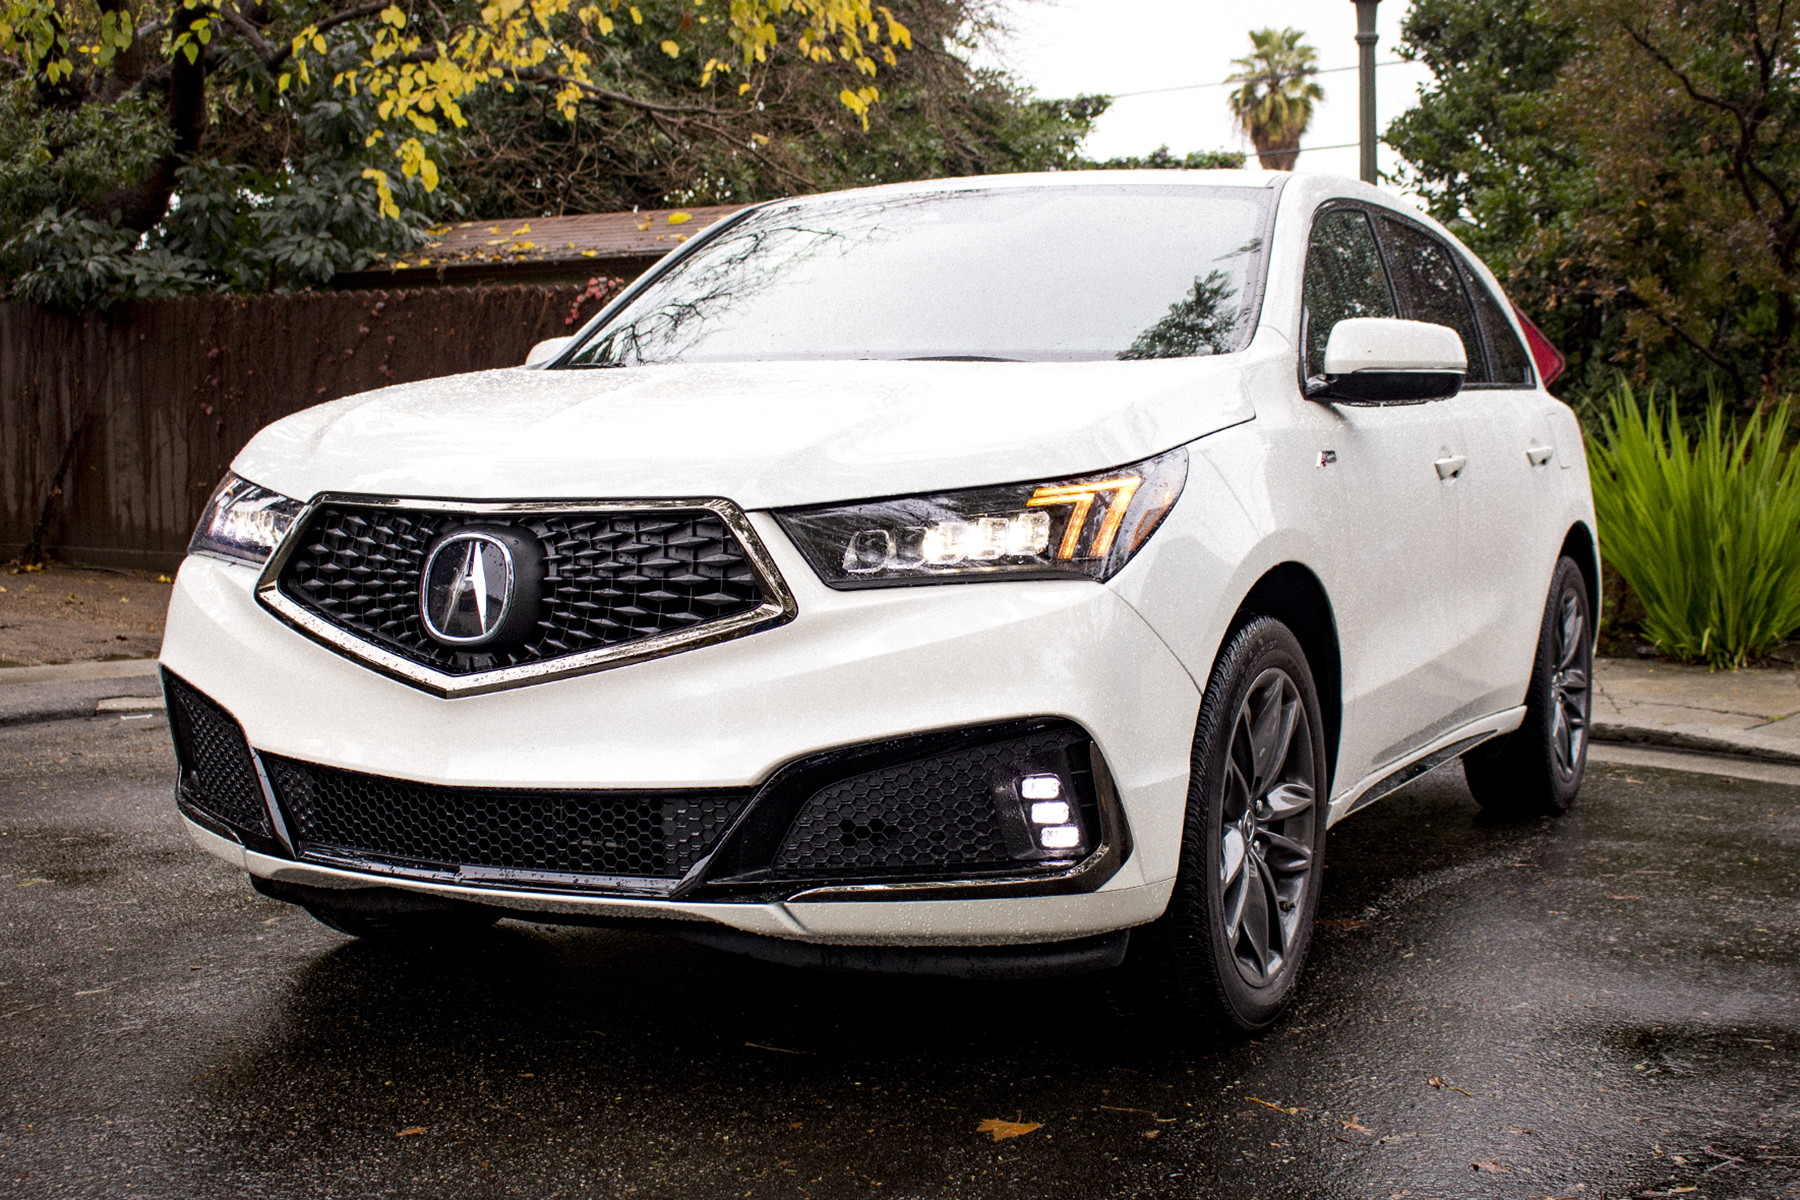 2019 Acura MDX A-Spec Review: A Nice Family Crossover ...